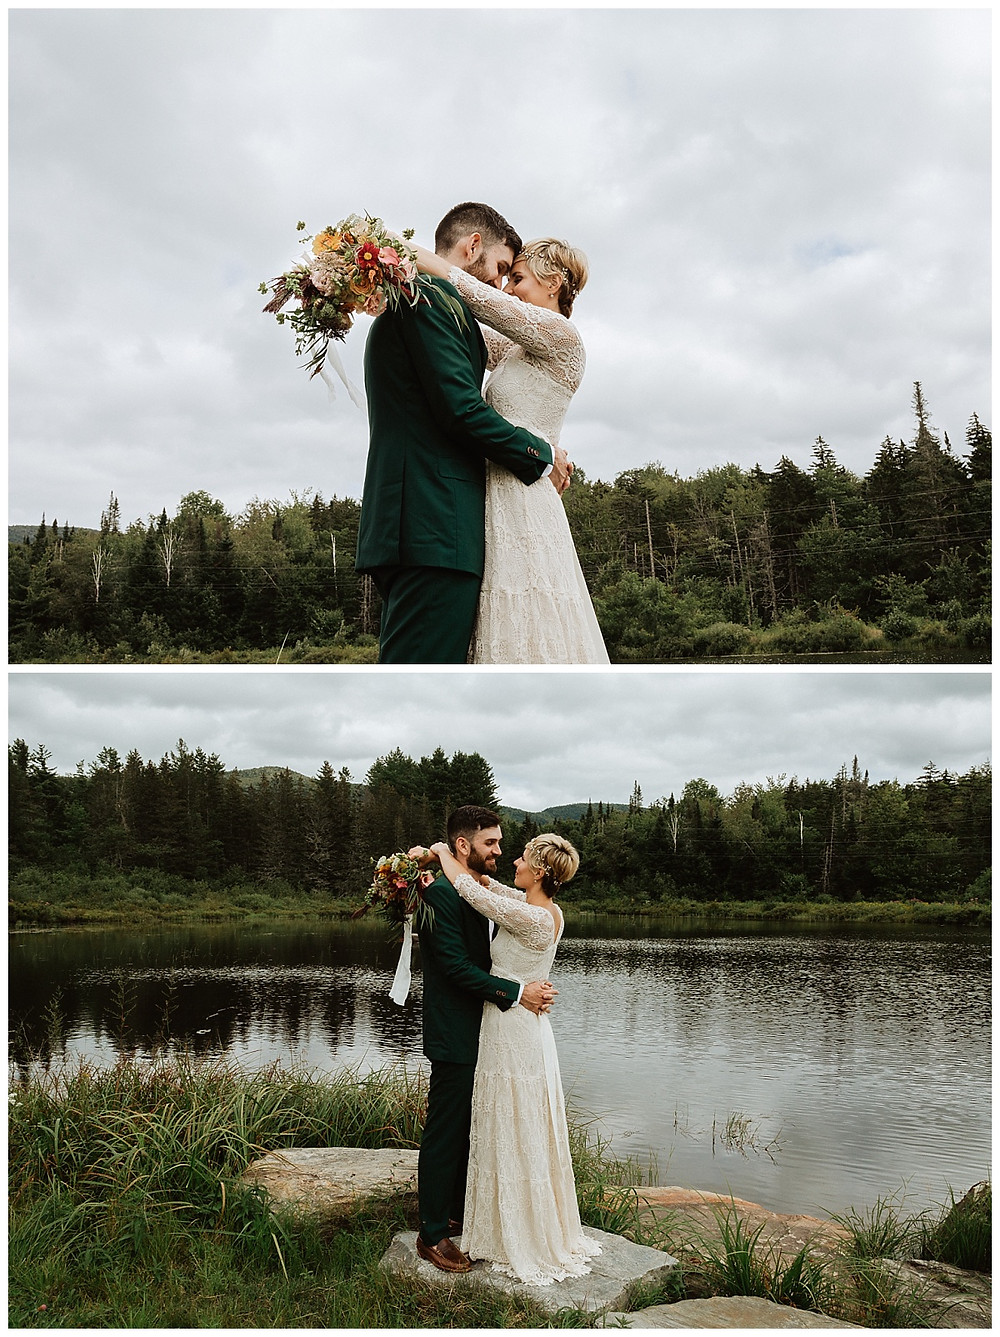 Vermont Mountain Bride & Groom Portraits